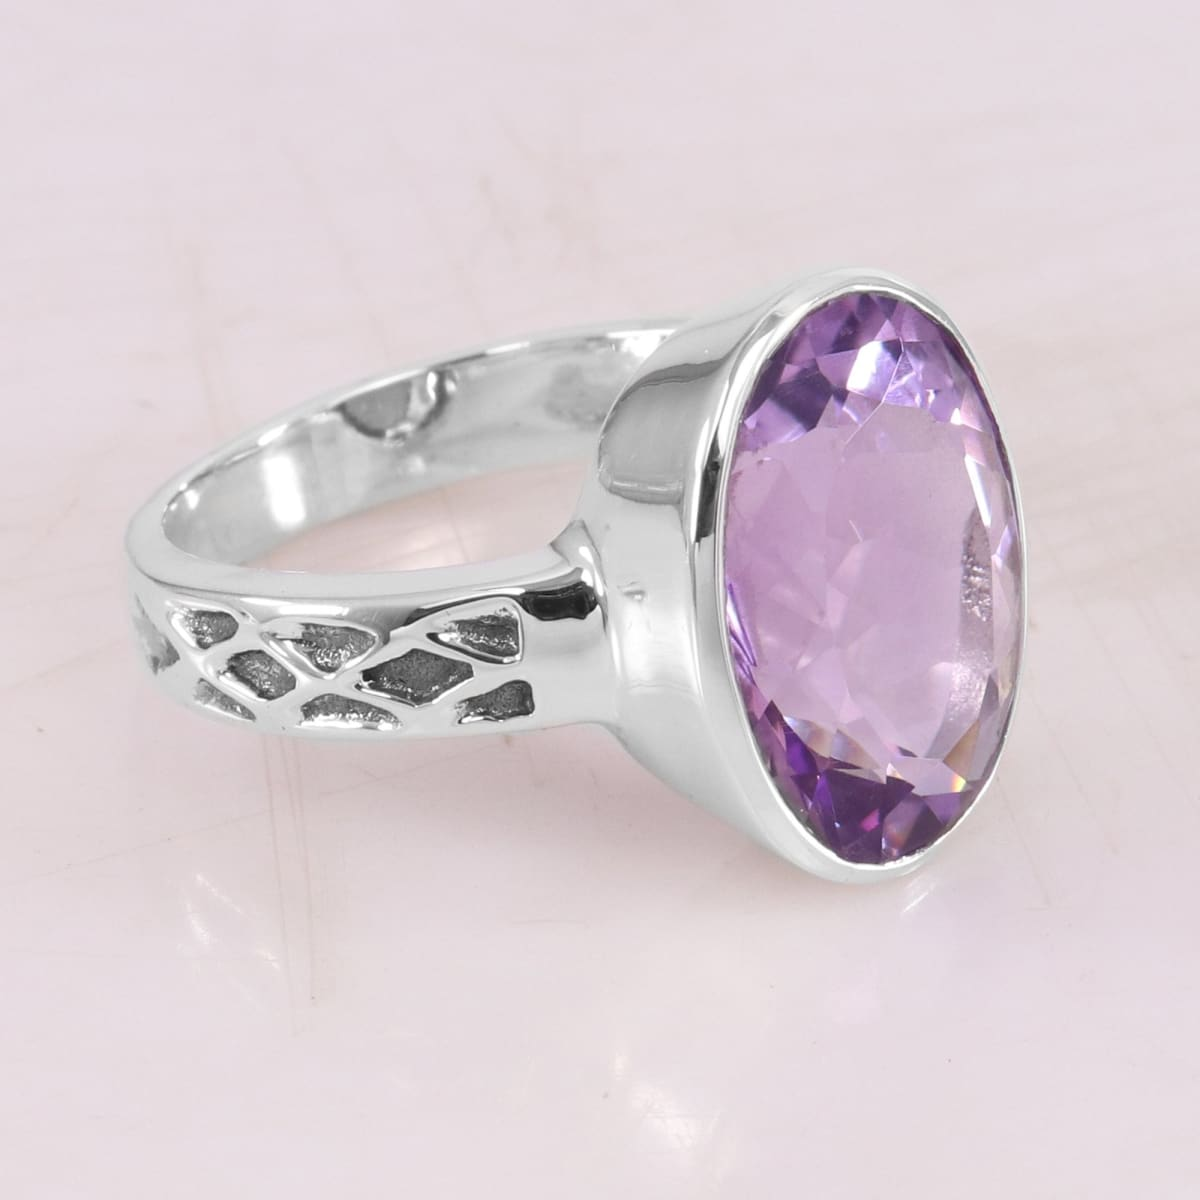 Ring Amethyst Silver Handmade 925 Sterling Gemstone 12X16mm For Women's - 7 by Rajtarang